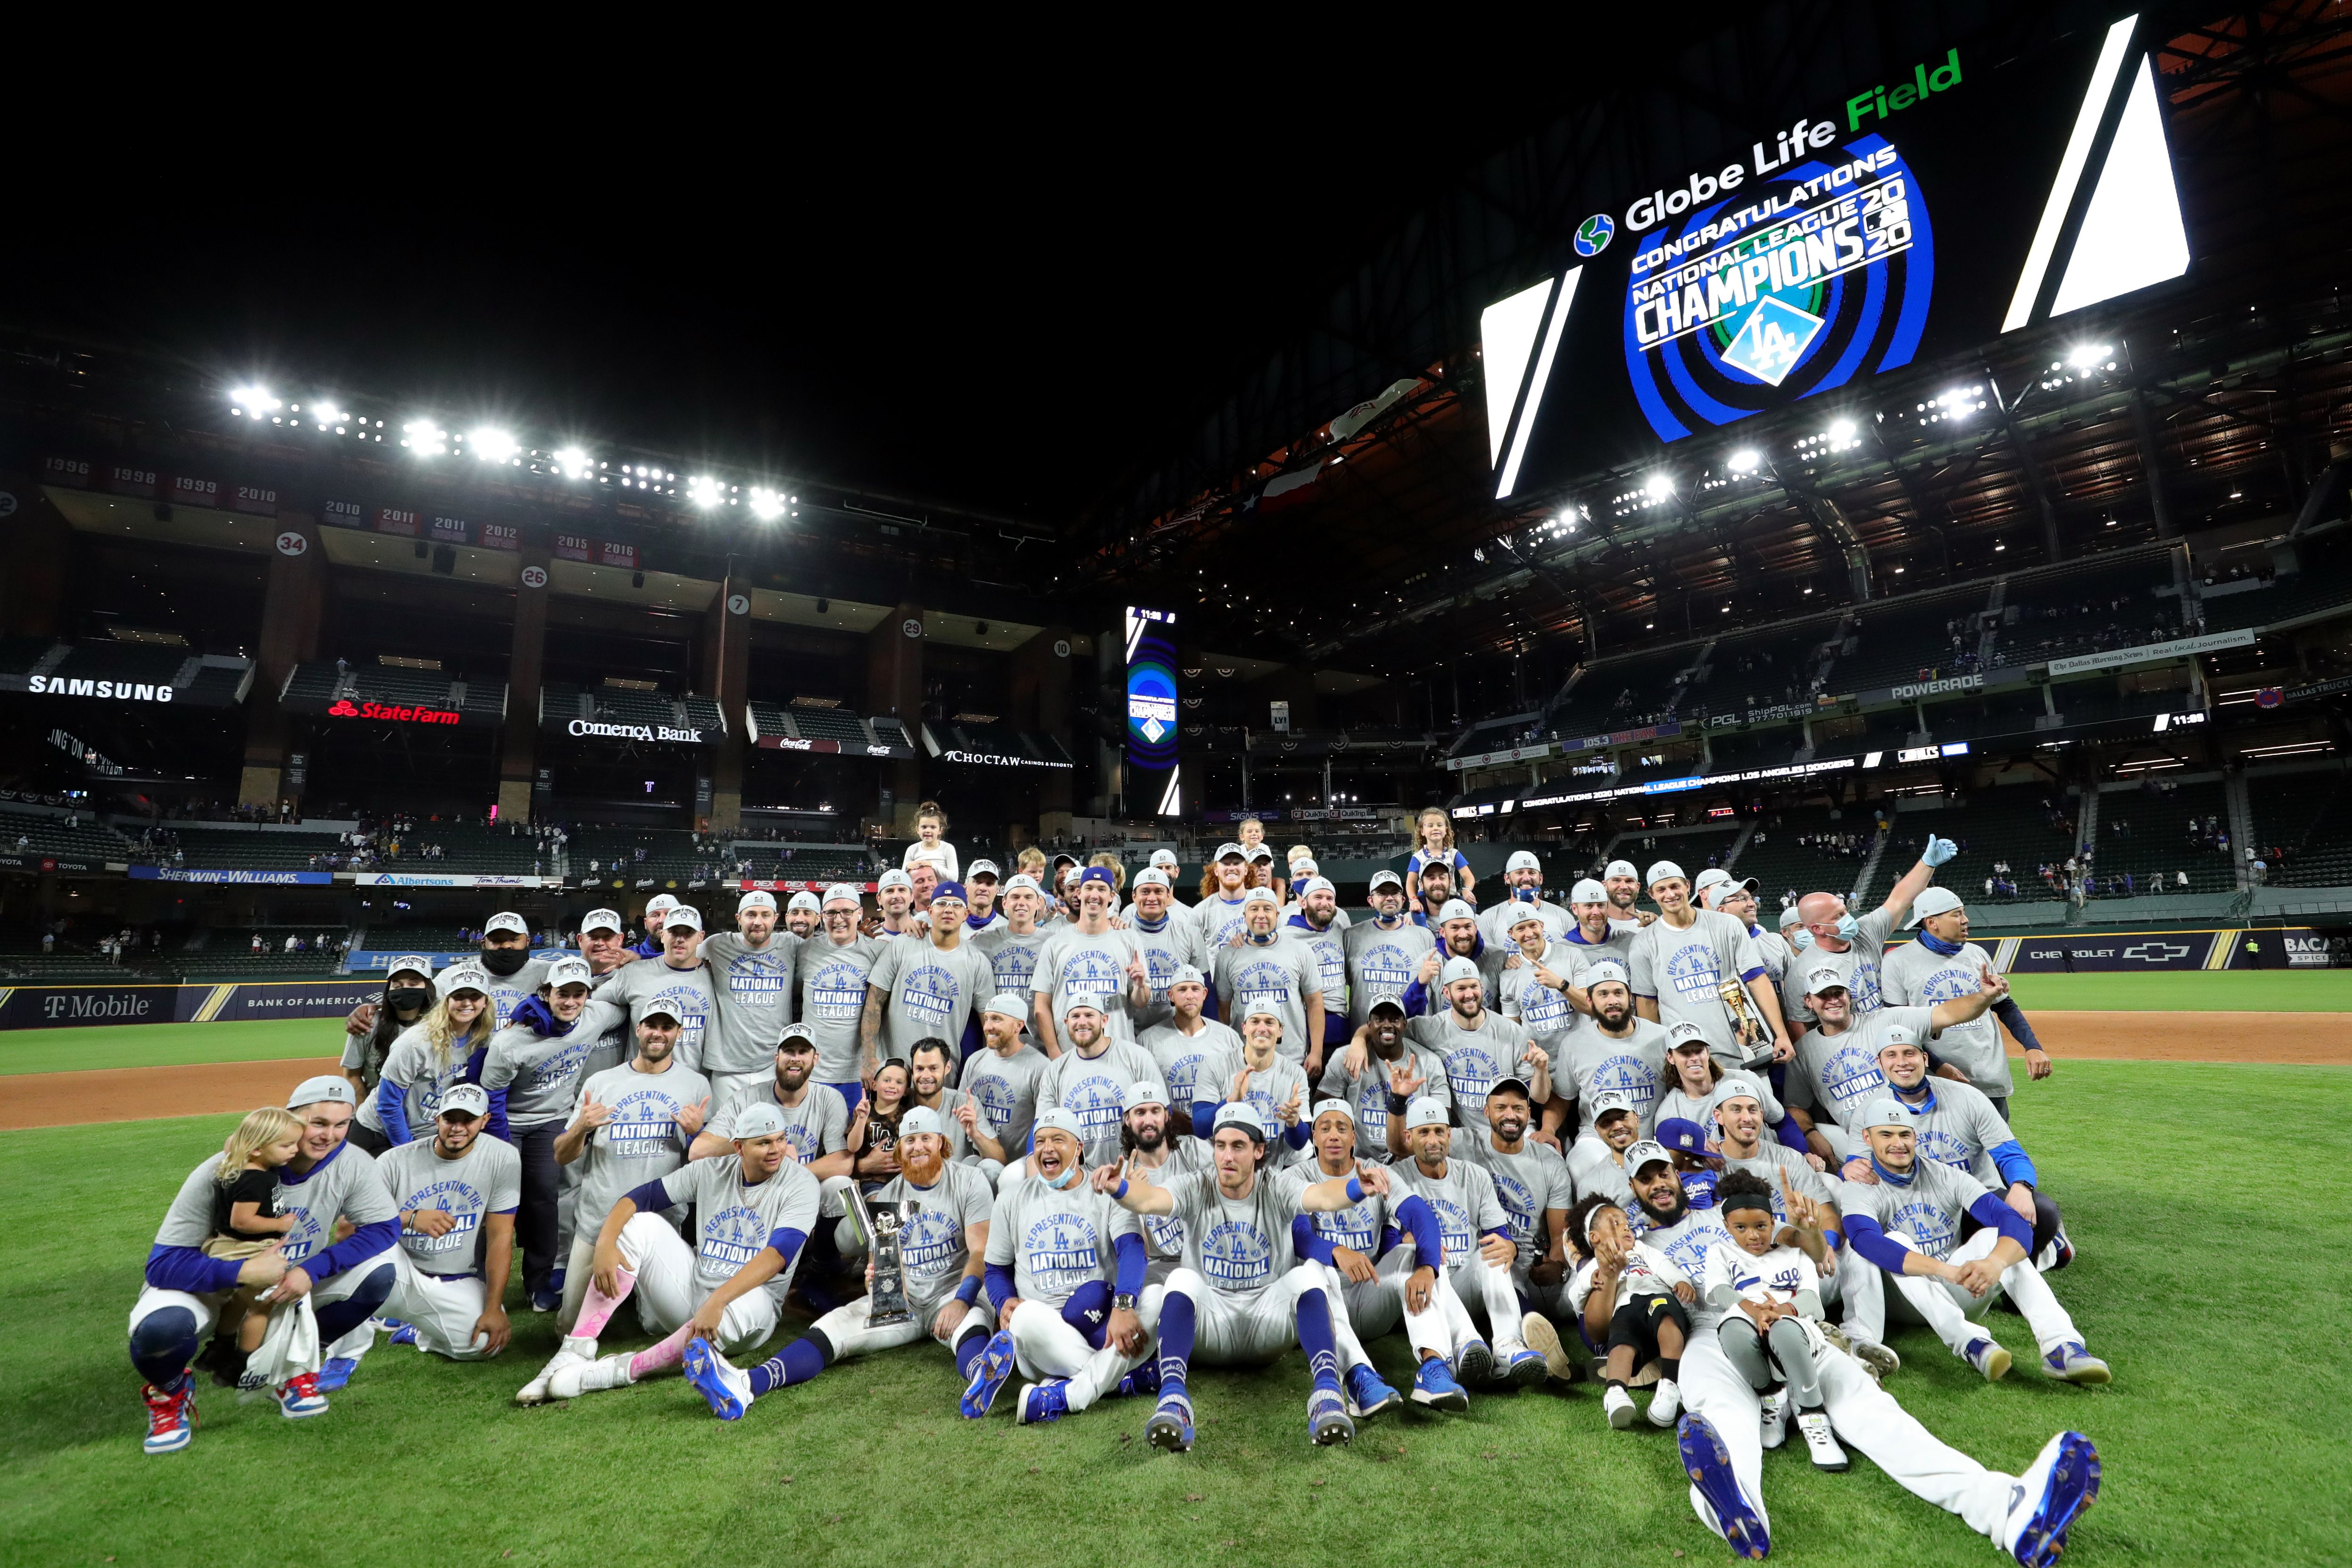 Members of the Los Angeles Dodgers pose for a team photo on the mound after defeating the Atlanta Brave in Game 7 of the NLCS at Globe Life Field on Sunday, October 18, 2020 | Photo: Getty Images